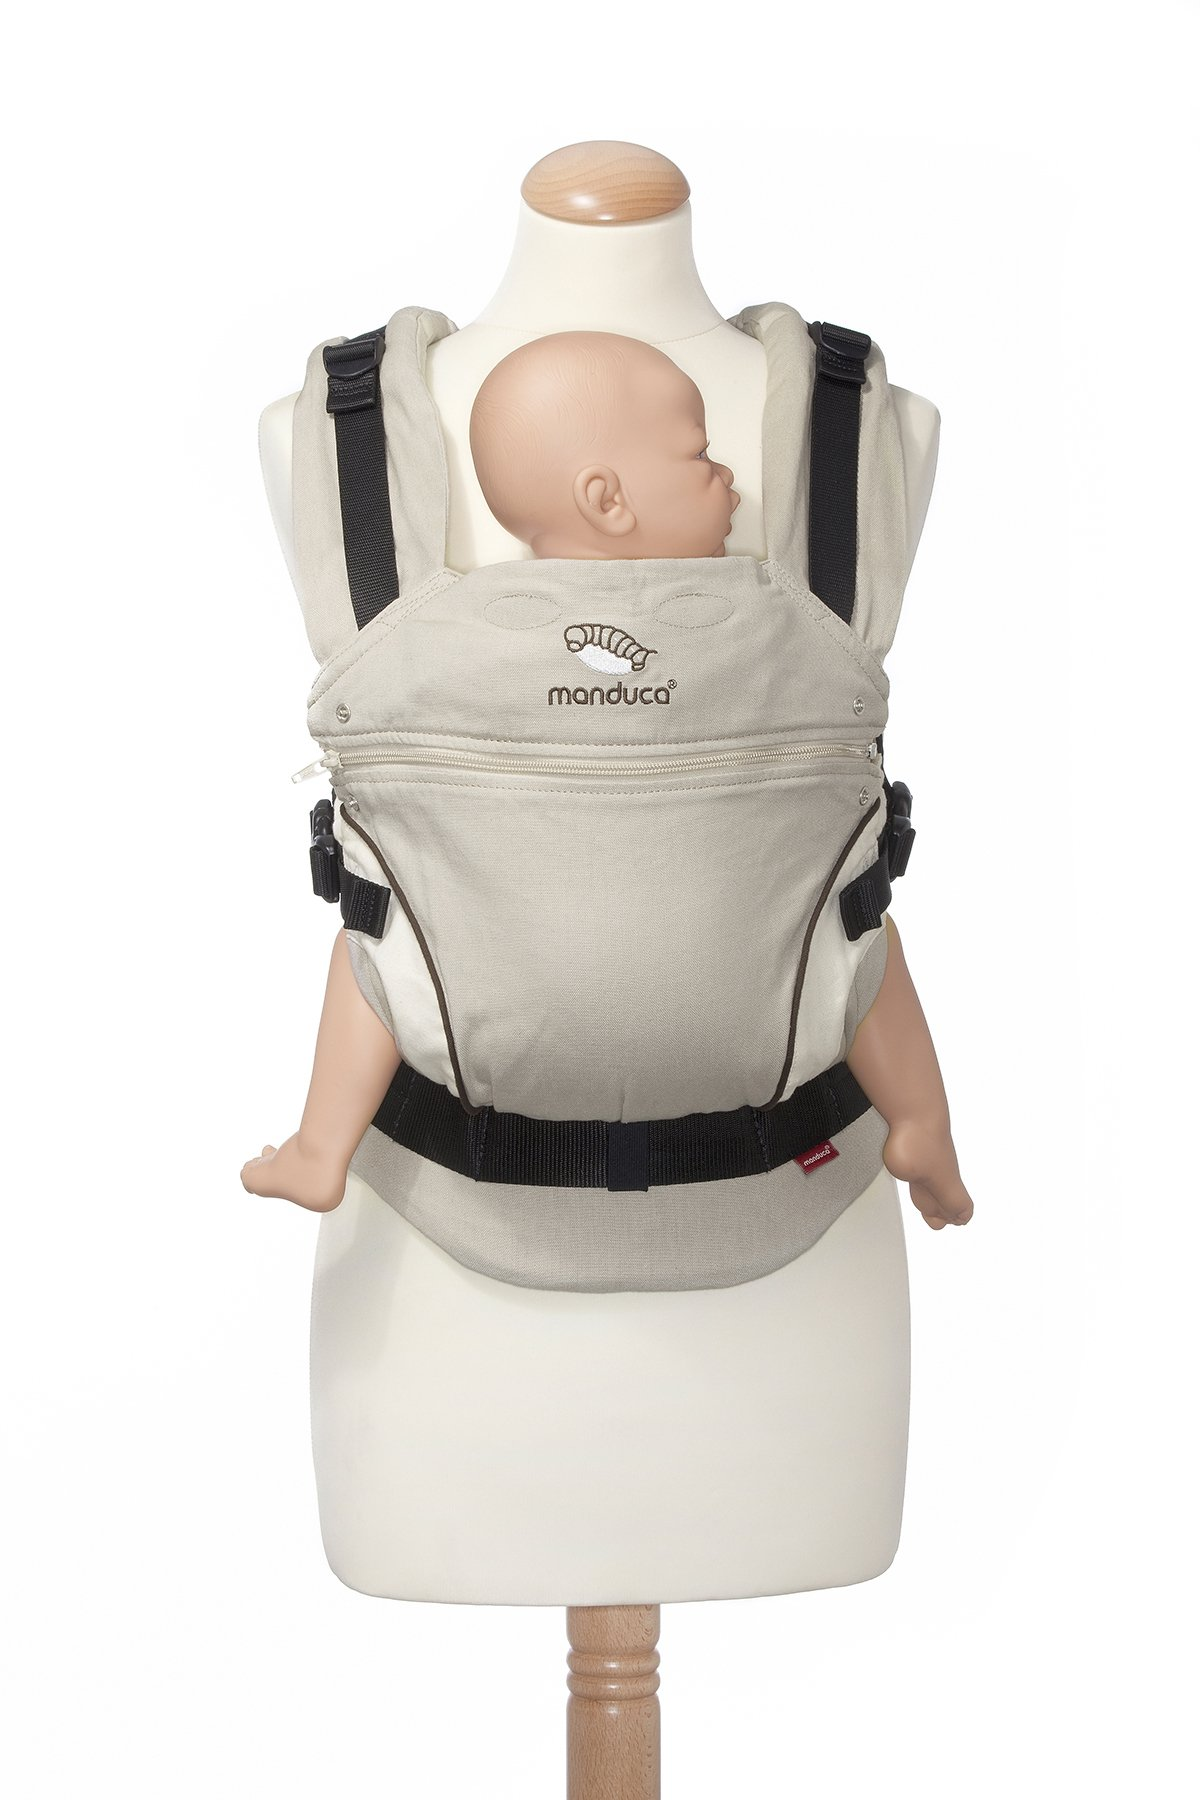 manduca First Baby Carrier > HempCotton Sand < Ergonomic Baby Carrier, Soft & Sturdy Canvas (Organic Cotton & Hemp), Front Carry, Hip Seat and Back Carry, from Newborn to Toddlers up to 20kg, Beige Manduca New features: Improved three-point-buckle (secure & easy to open); extra soft canvas made of 45% hemp and 55% organic cotton (outside), 100% organic cotton lining (inside) Already integrated in every baby carrier: infant pouch (newborn insert), stowable headrest & sun protection for your baby, patented back extension (grows with your child); Optional accessories for newborns: Size-It (seat reducer) and Zip-In Ellipse Ergonomic design for men & women: Soft padded shoulder straps (multiple adjustable) & anatomically shaped stable hipbelt (fits hips from 64cm to 140cm) ensure balanced weight distribution. No waist-belt extension needed 5